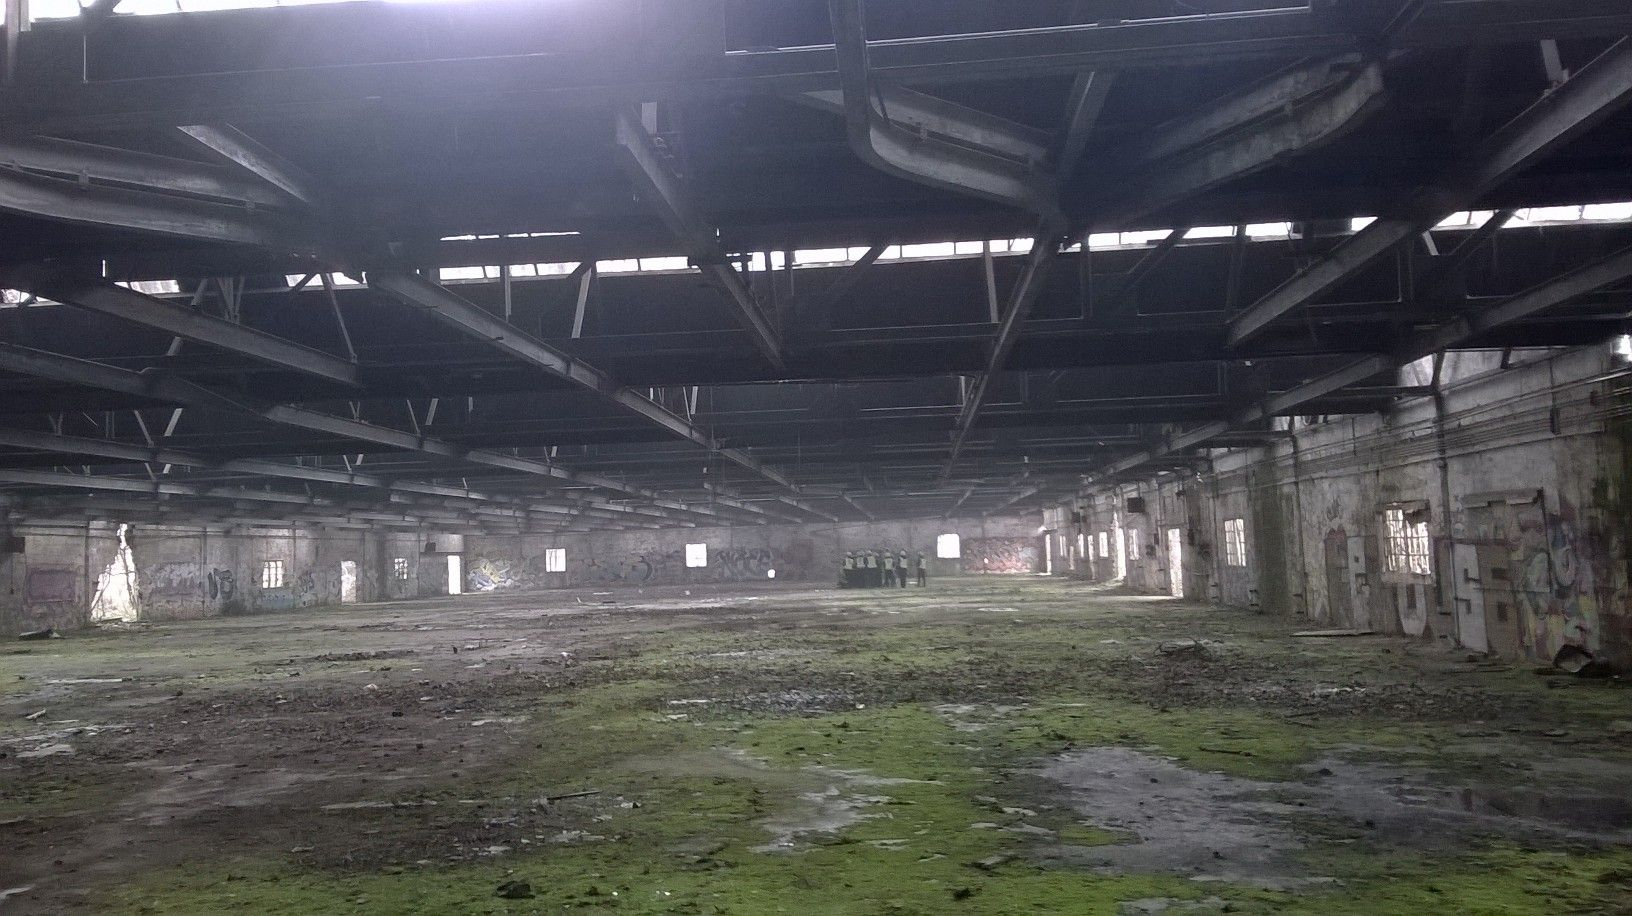 Back Factory Herford the shell store rotherwas munitions factory national filling